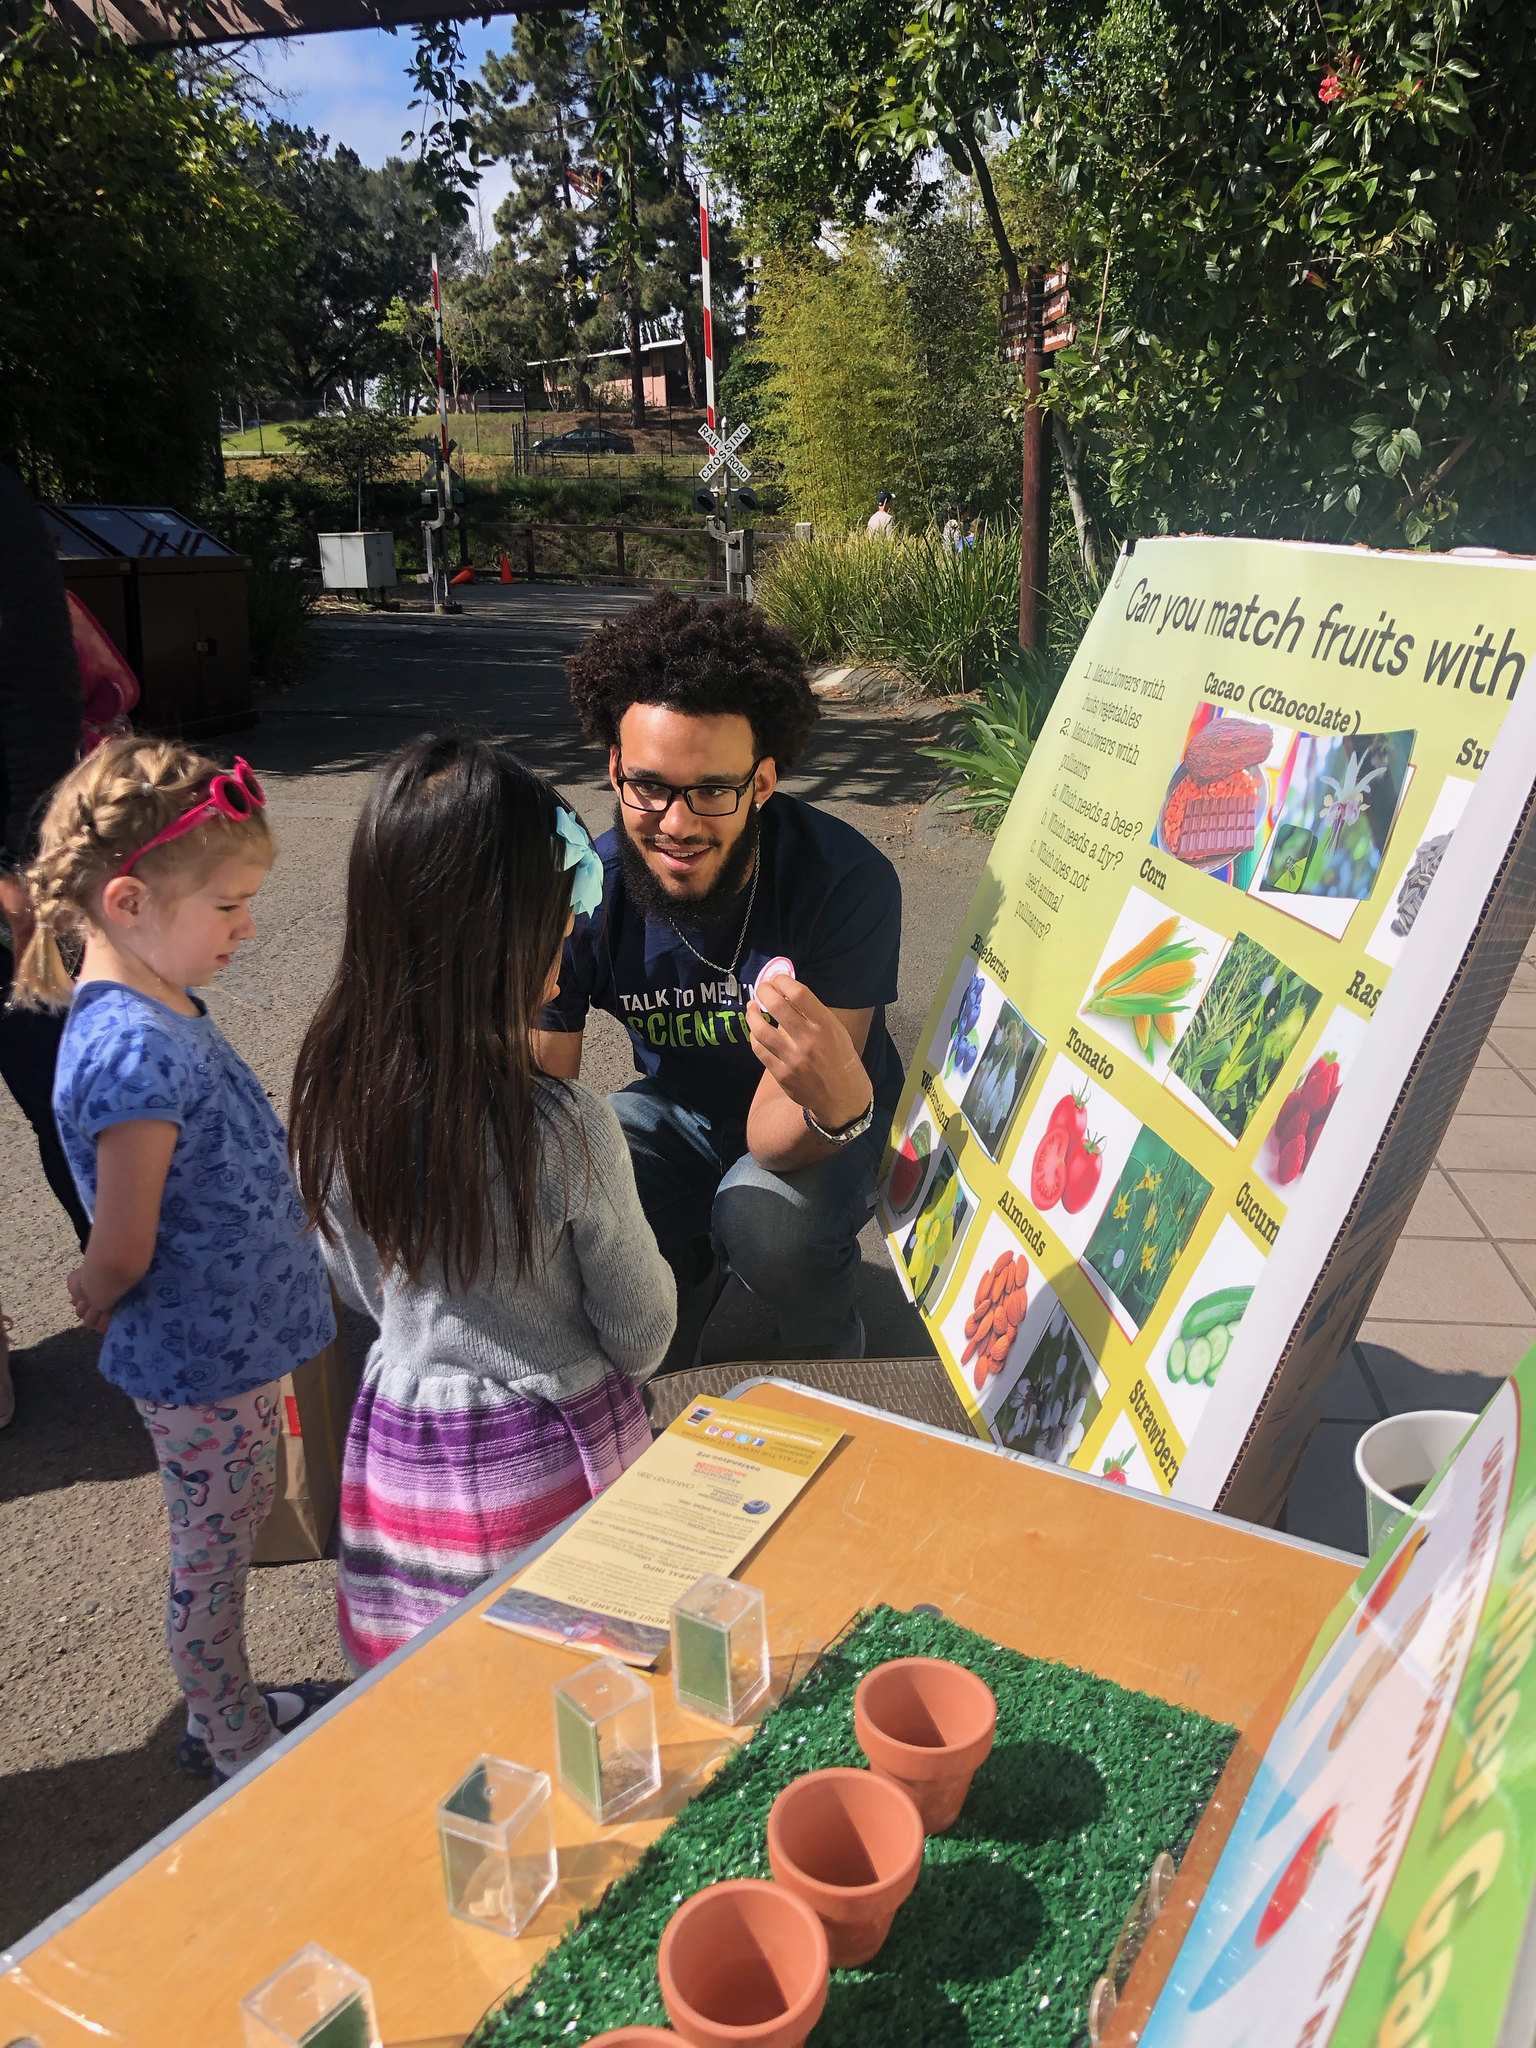 A man teaching students about flowers at a farmer's market